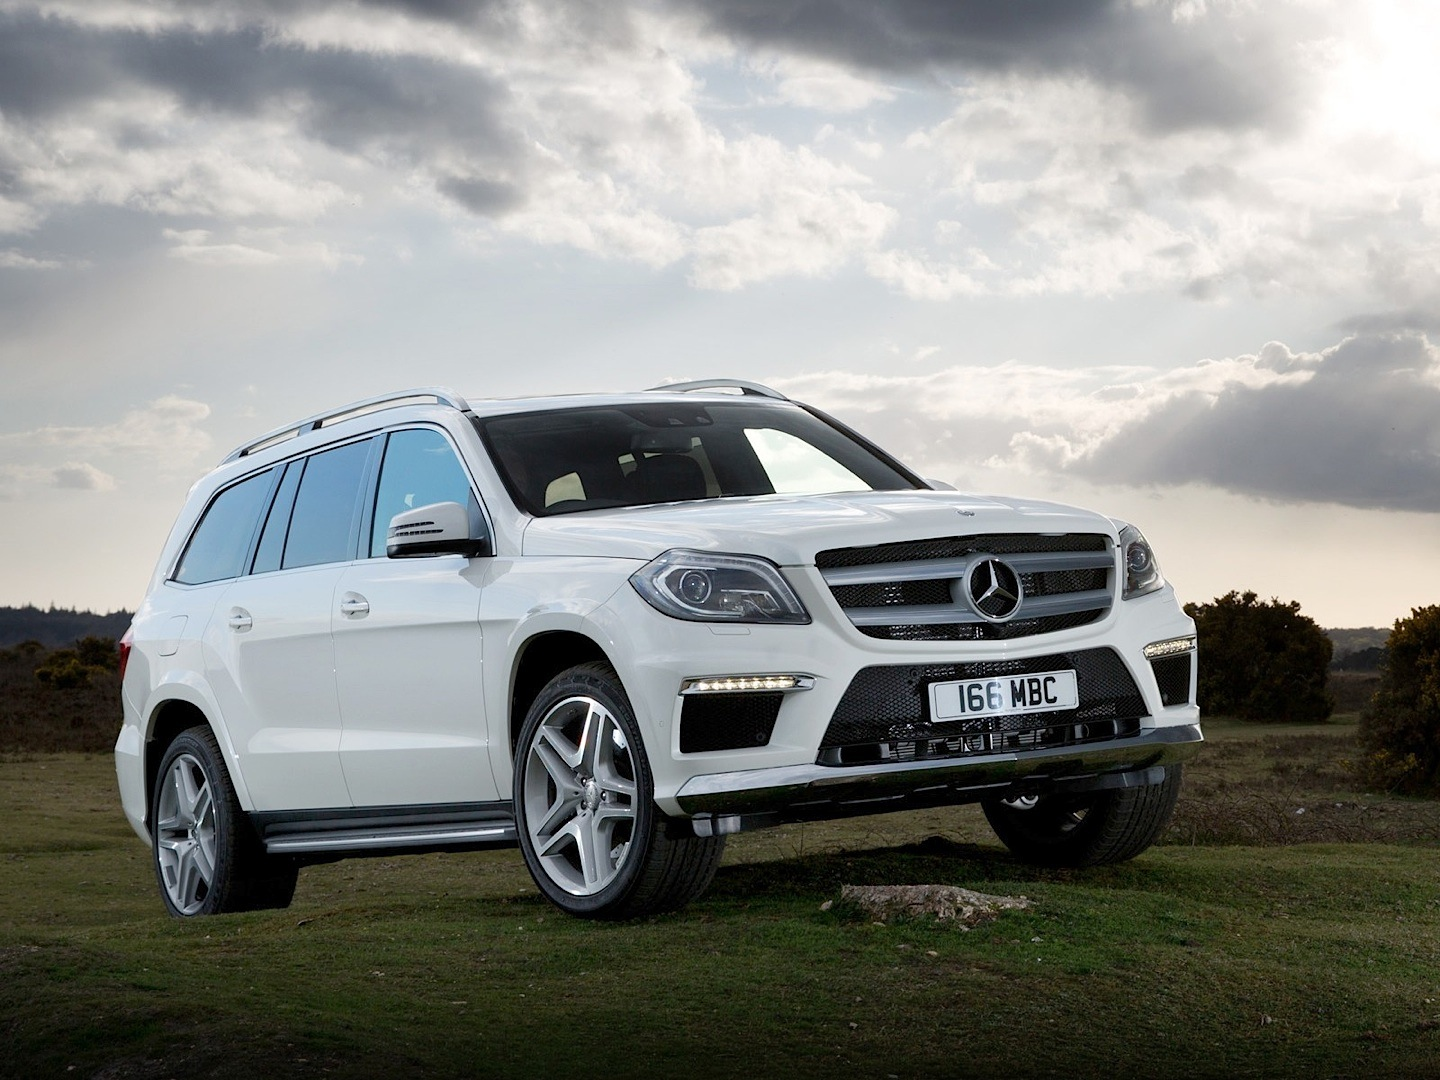 Mercedes benz gl 350 bluetec reviewed by auto express for Mercedes benz gl 350 bluetec